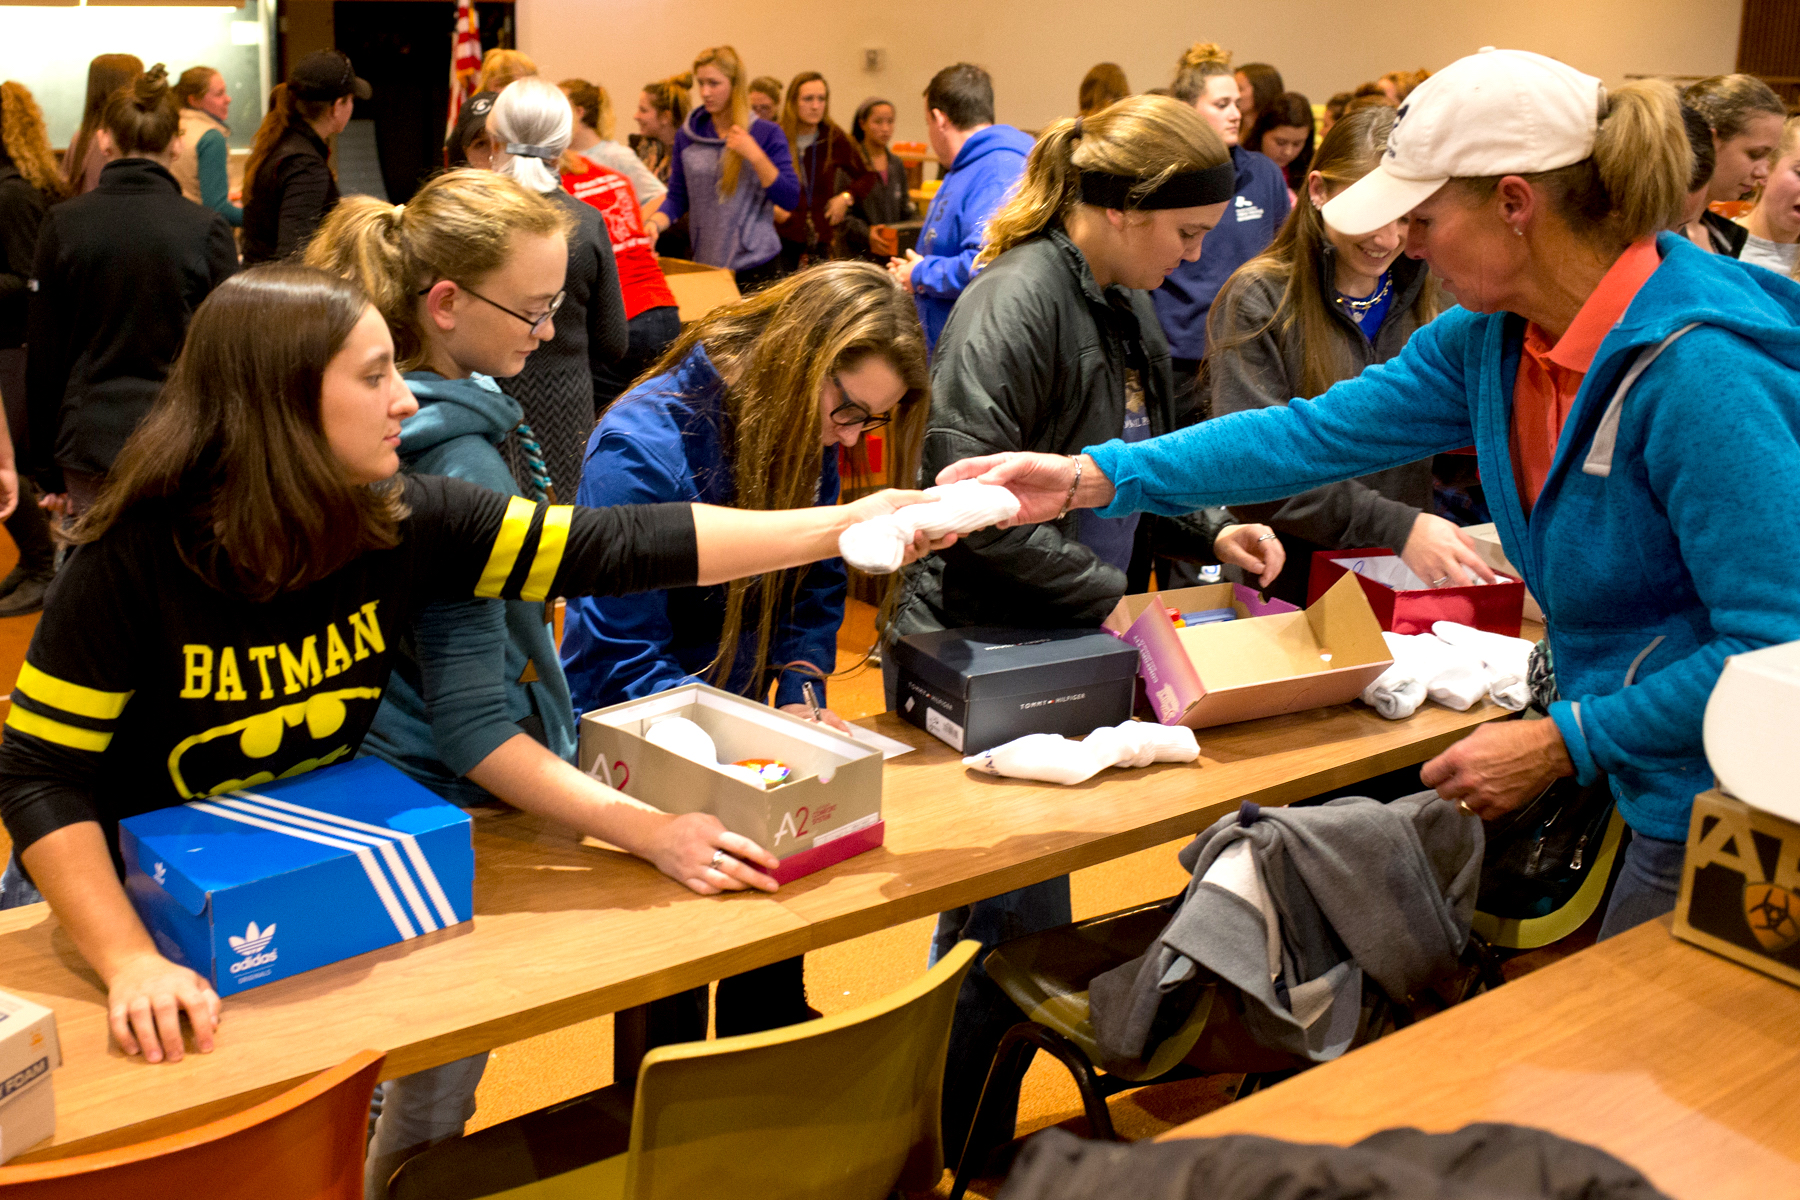 Carla Wennberg hands a student some socks for the packages. Photo by Rooney Coffman